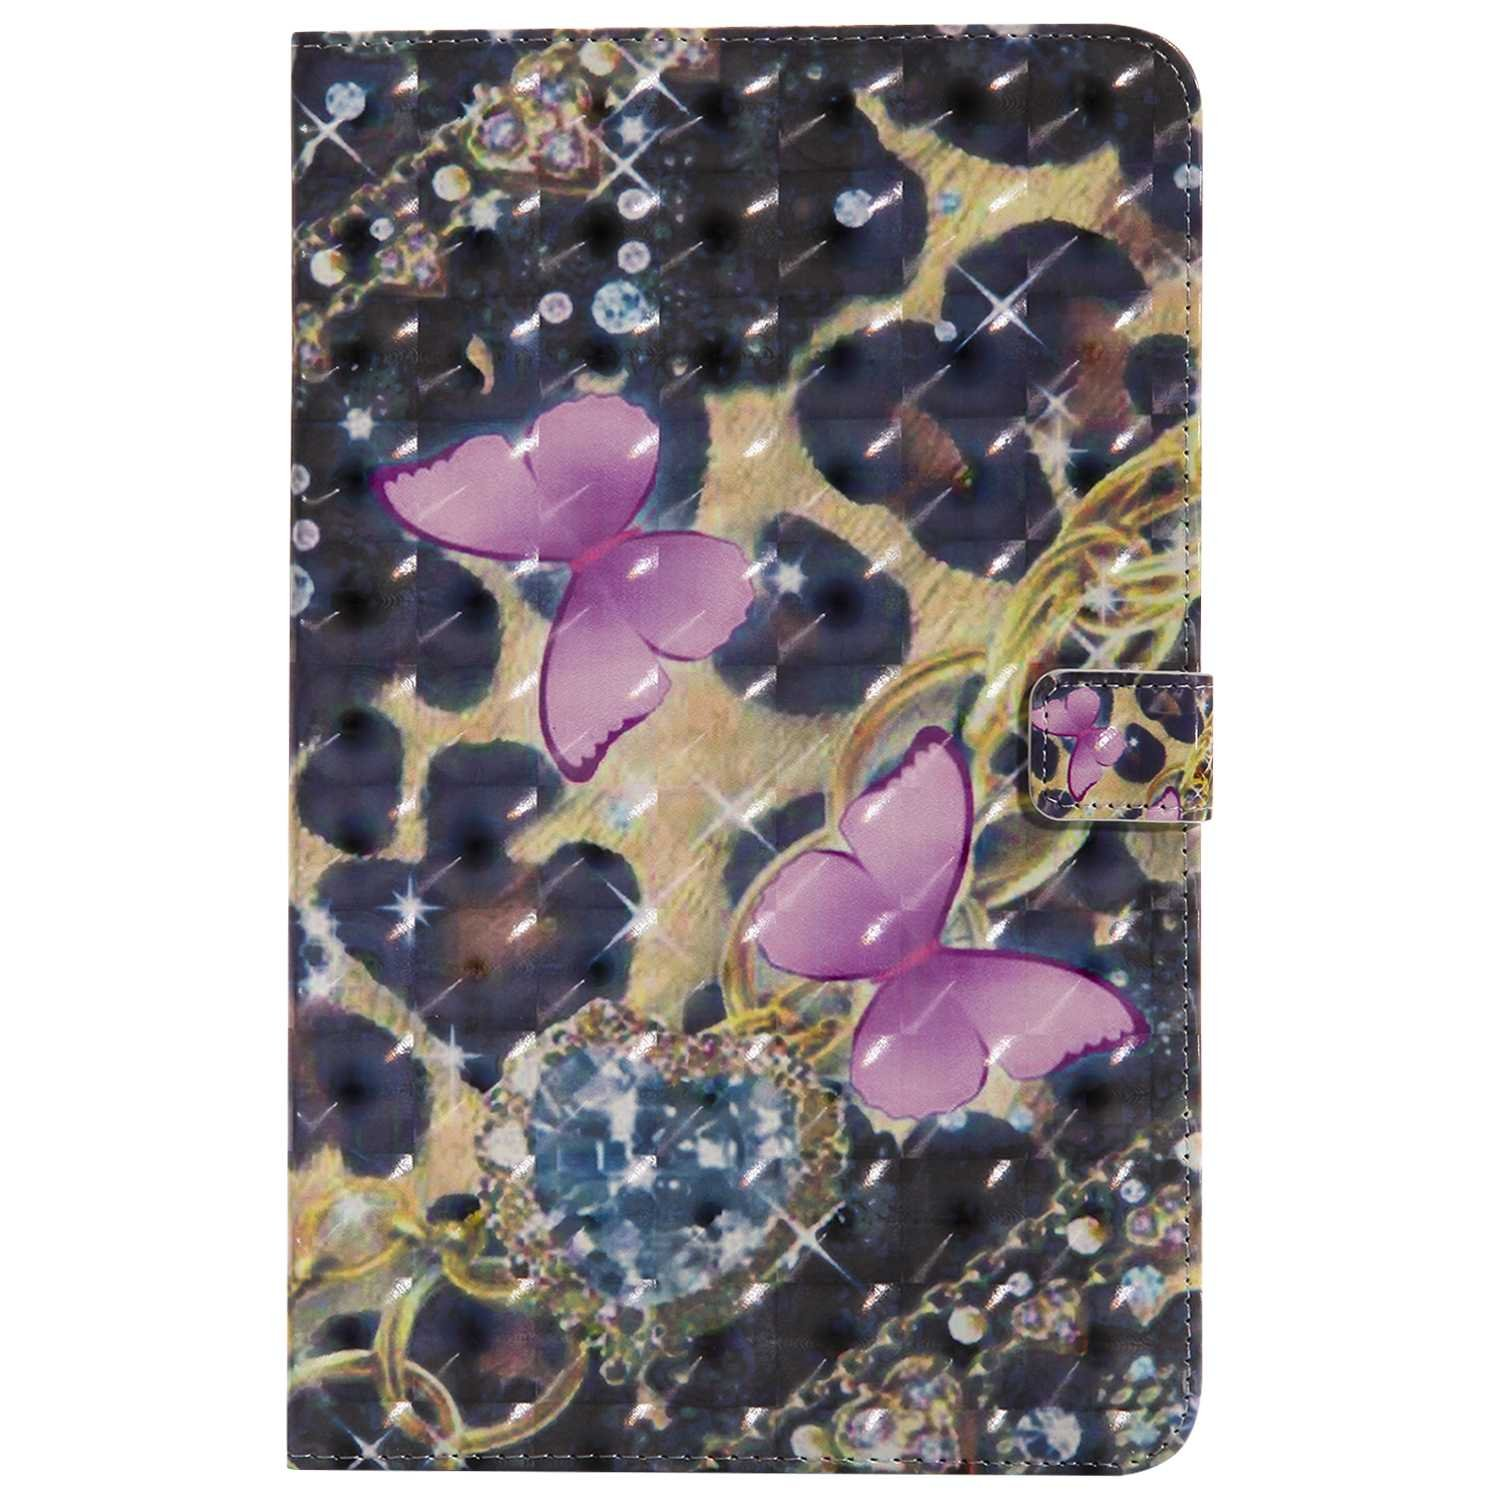 Bear Village Galaxy Tab e 9.6 Inch Case, Premium 3D Leather Case with Multiangle Viewing Stand and Card Slots for Samsung Galaxy Tab e 9.6 Inch, Pink Butterfly by Bear Village